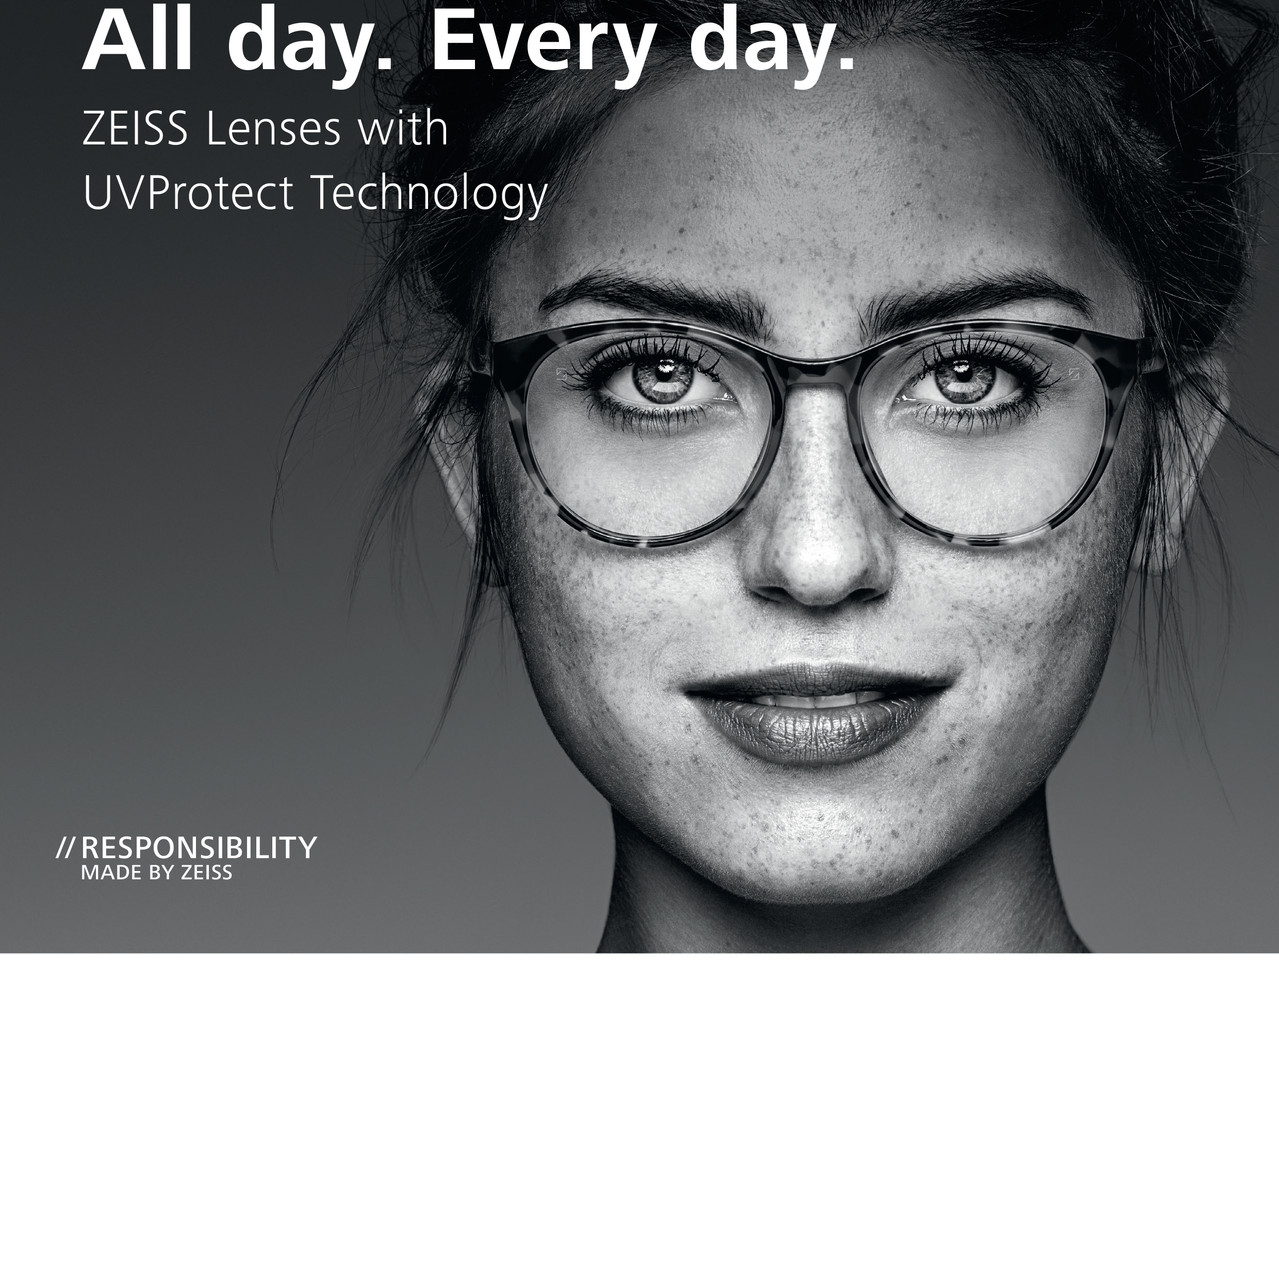 zeiss_uvprotect_visuals_portrait